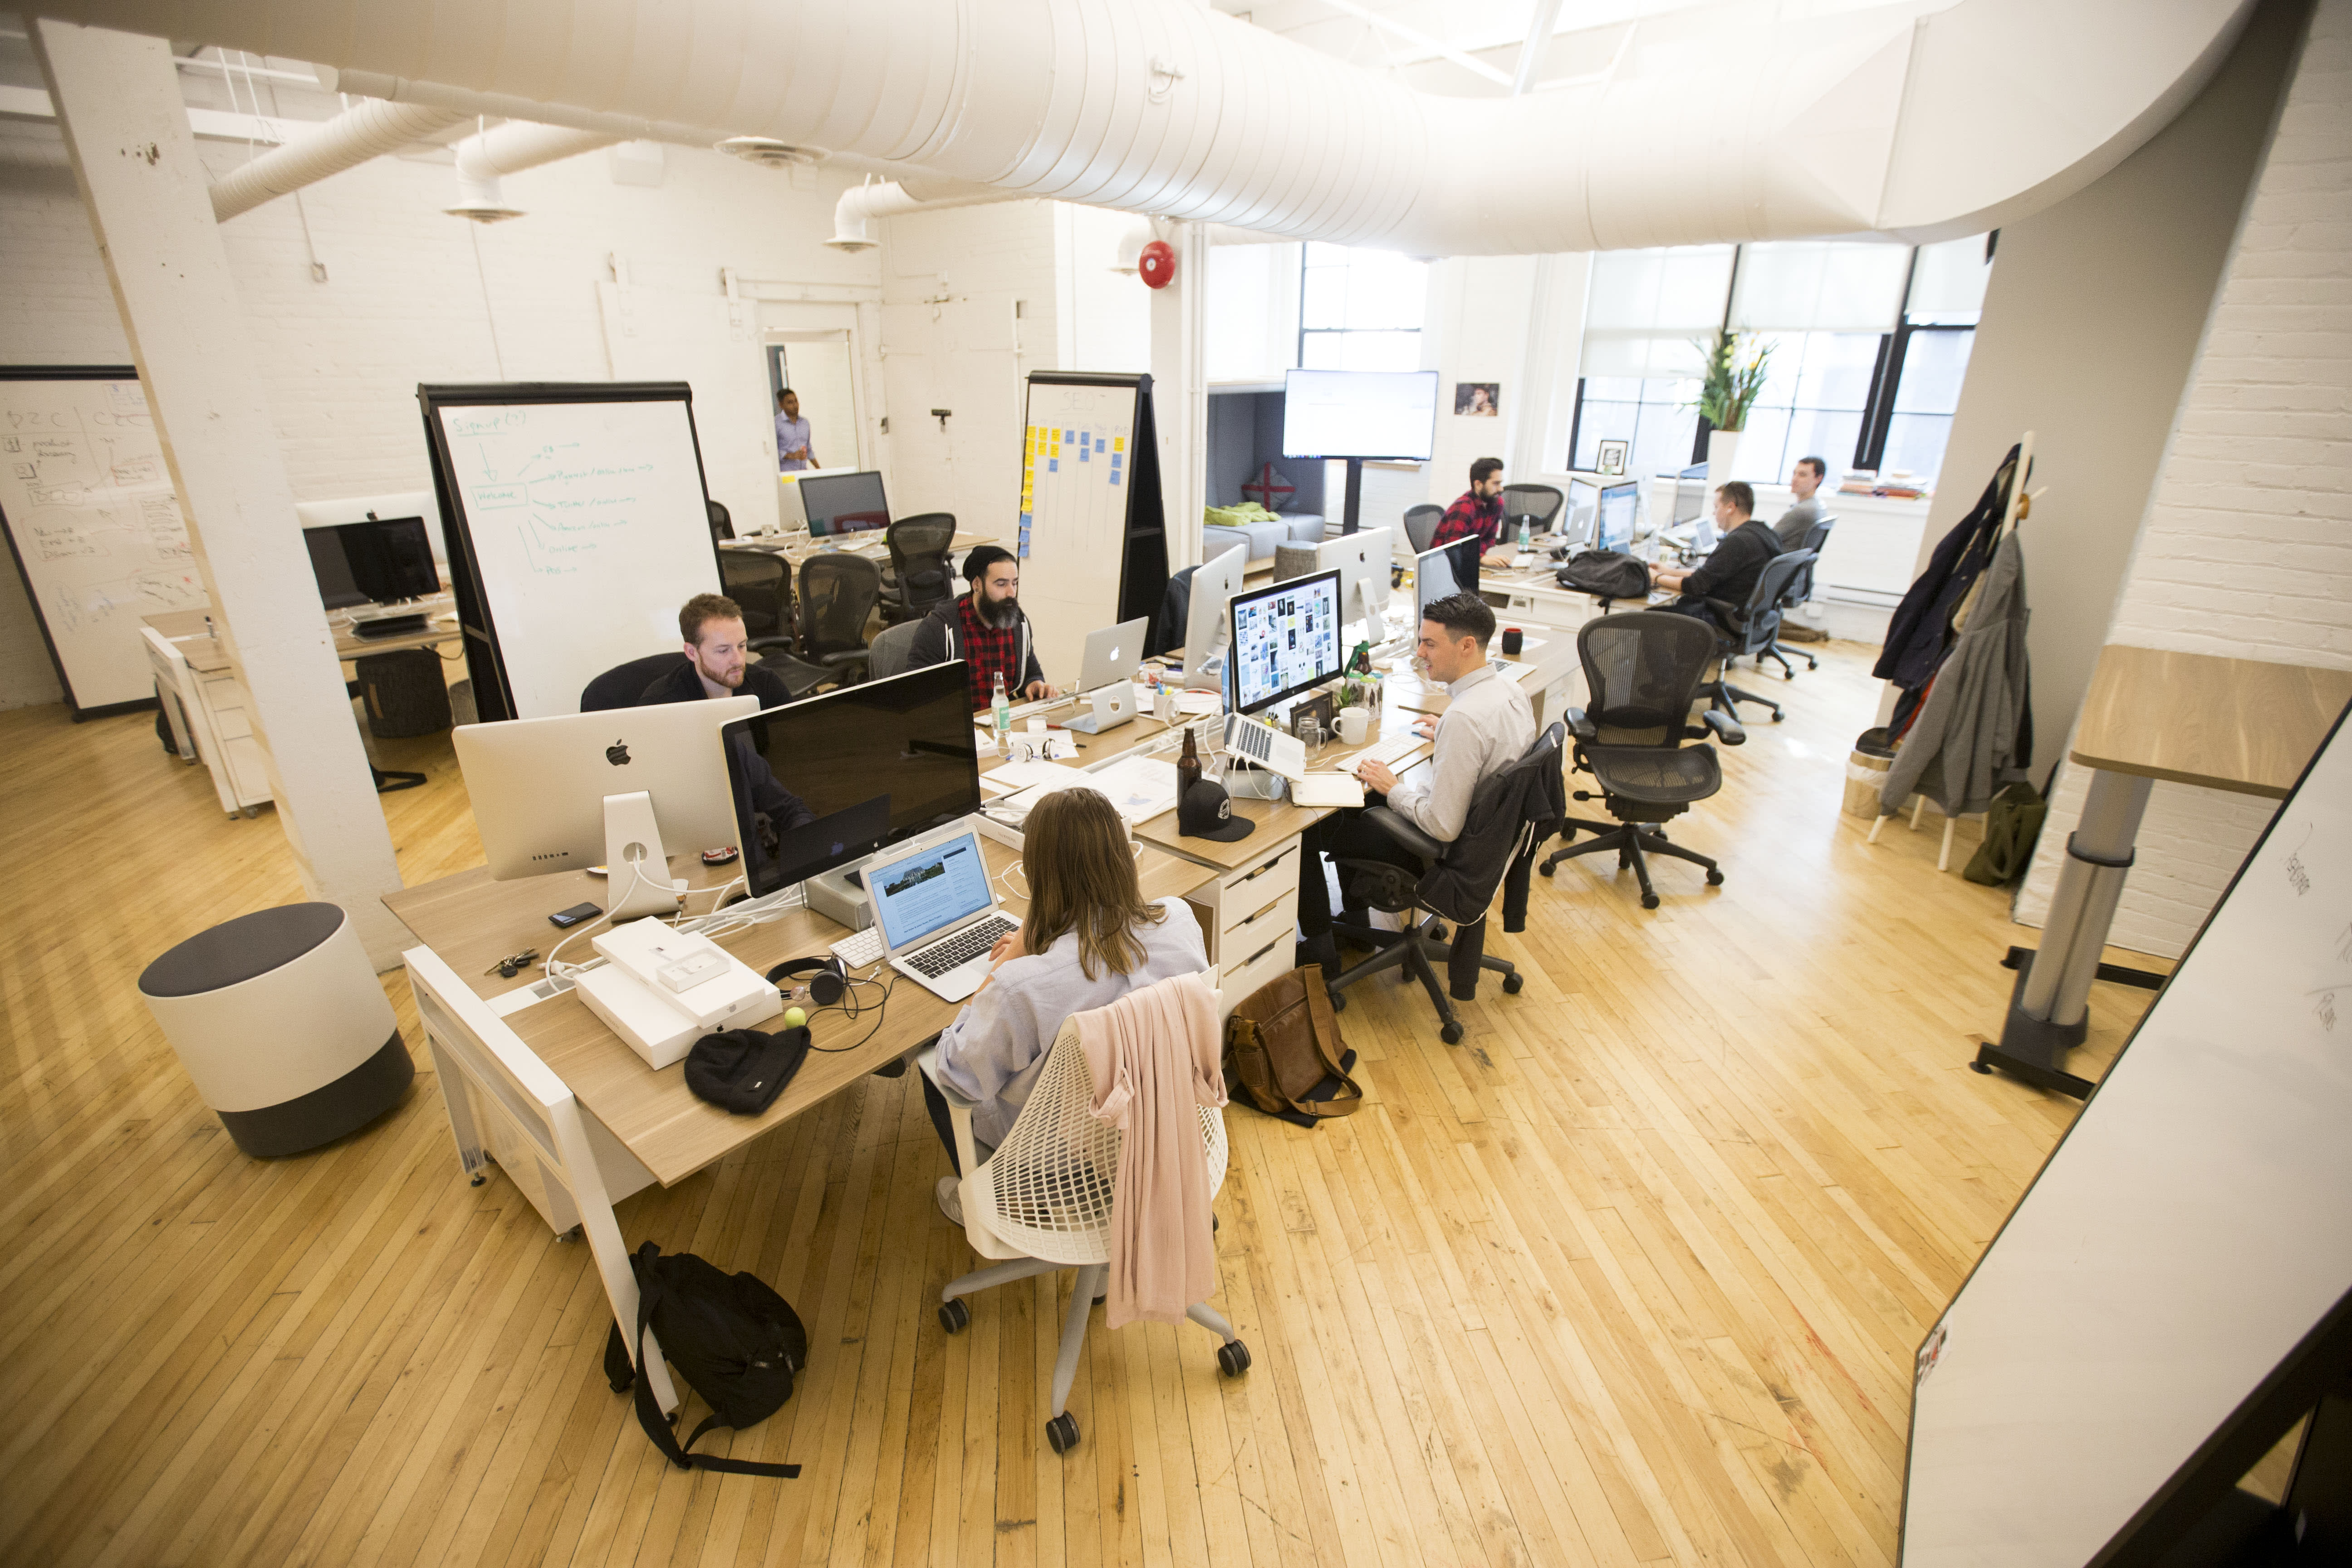 As coronavirus crisis pushes more to work from home, some see an end to 'office centricity'